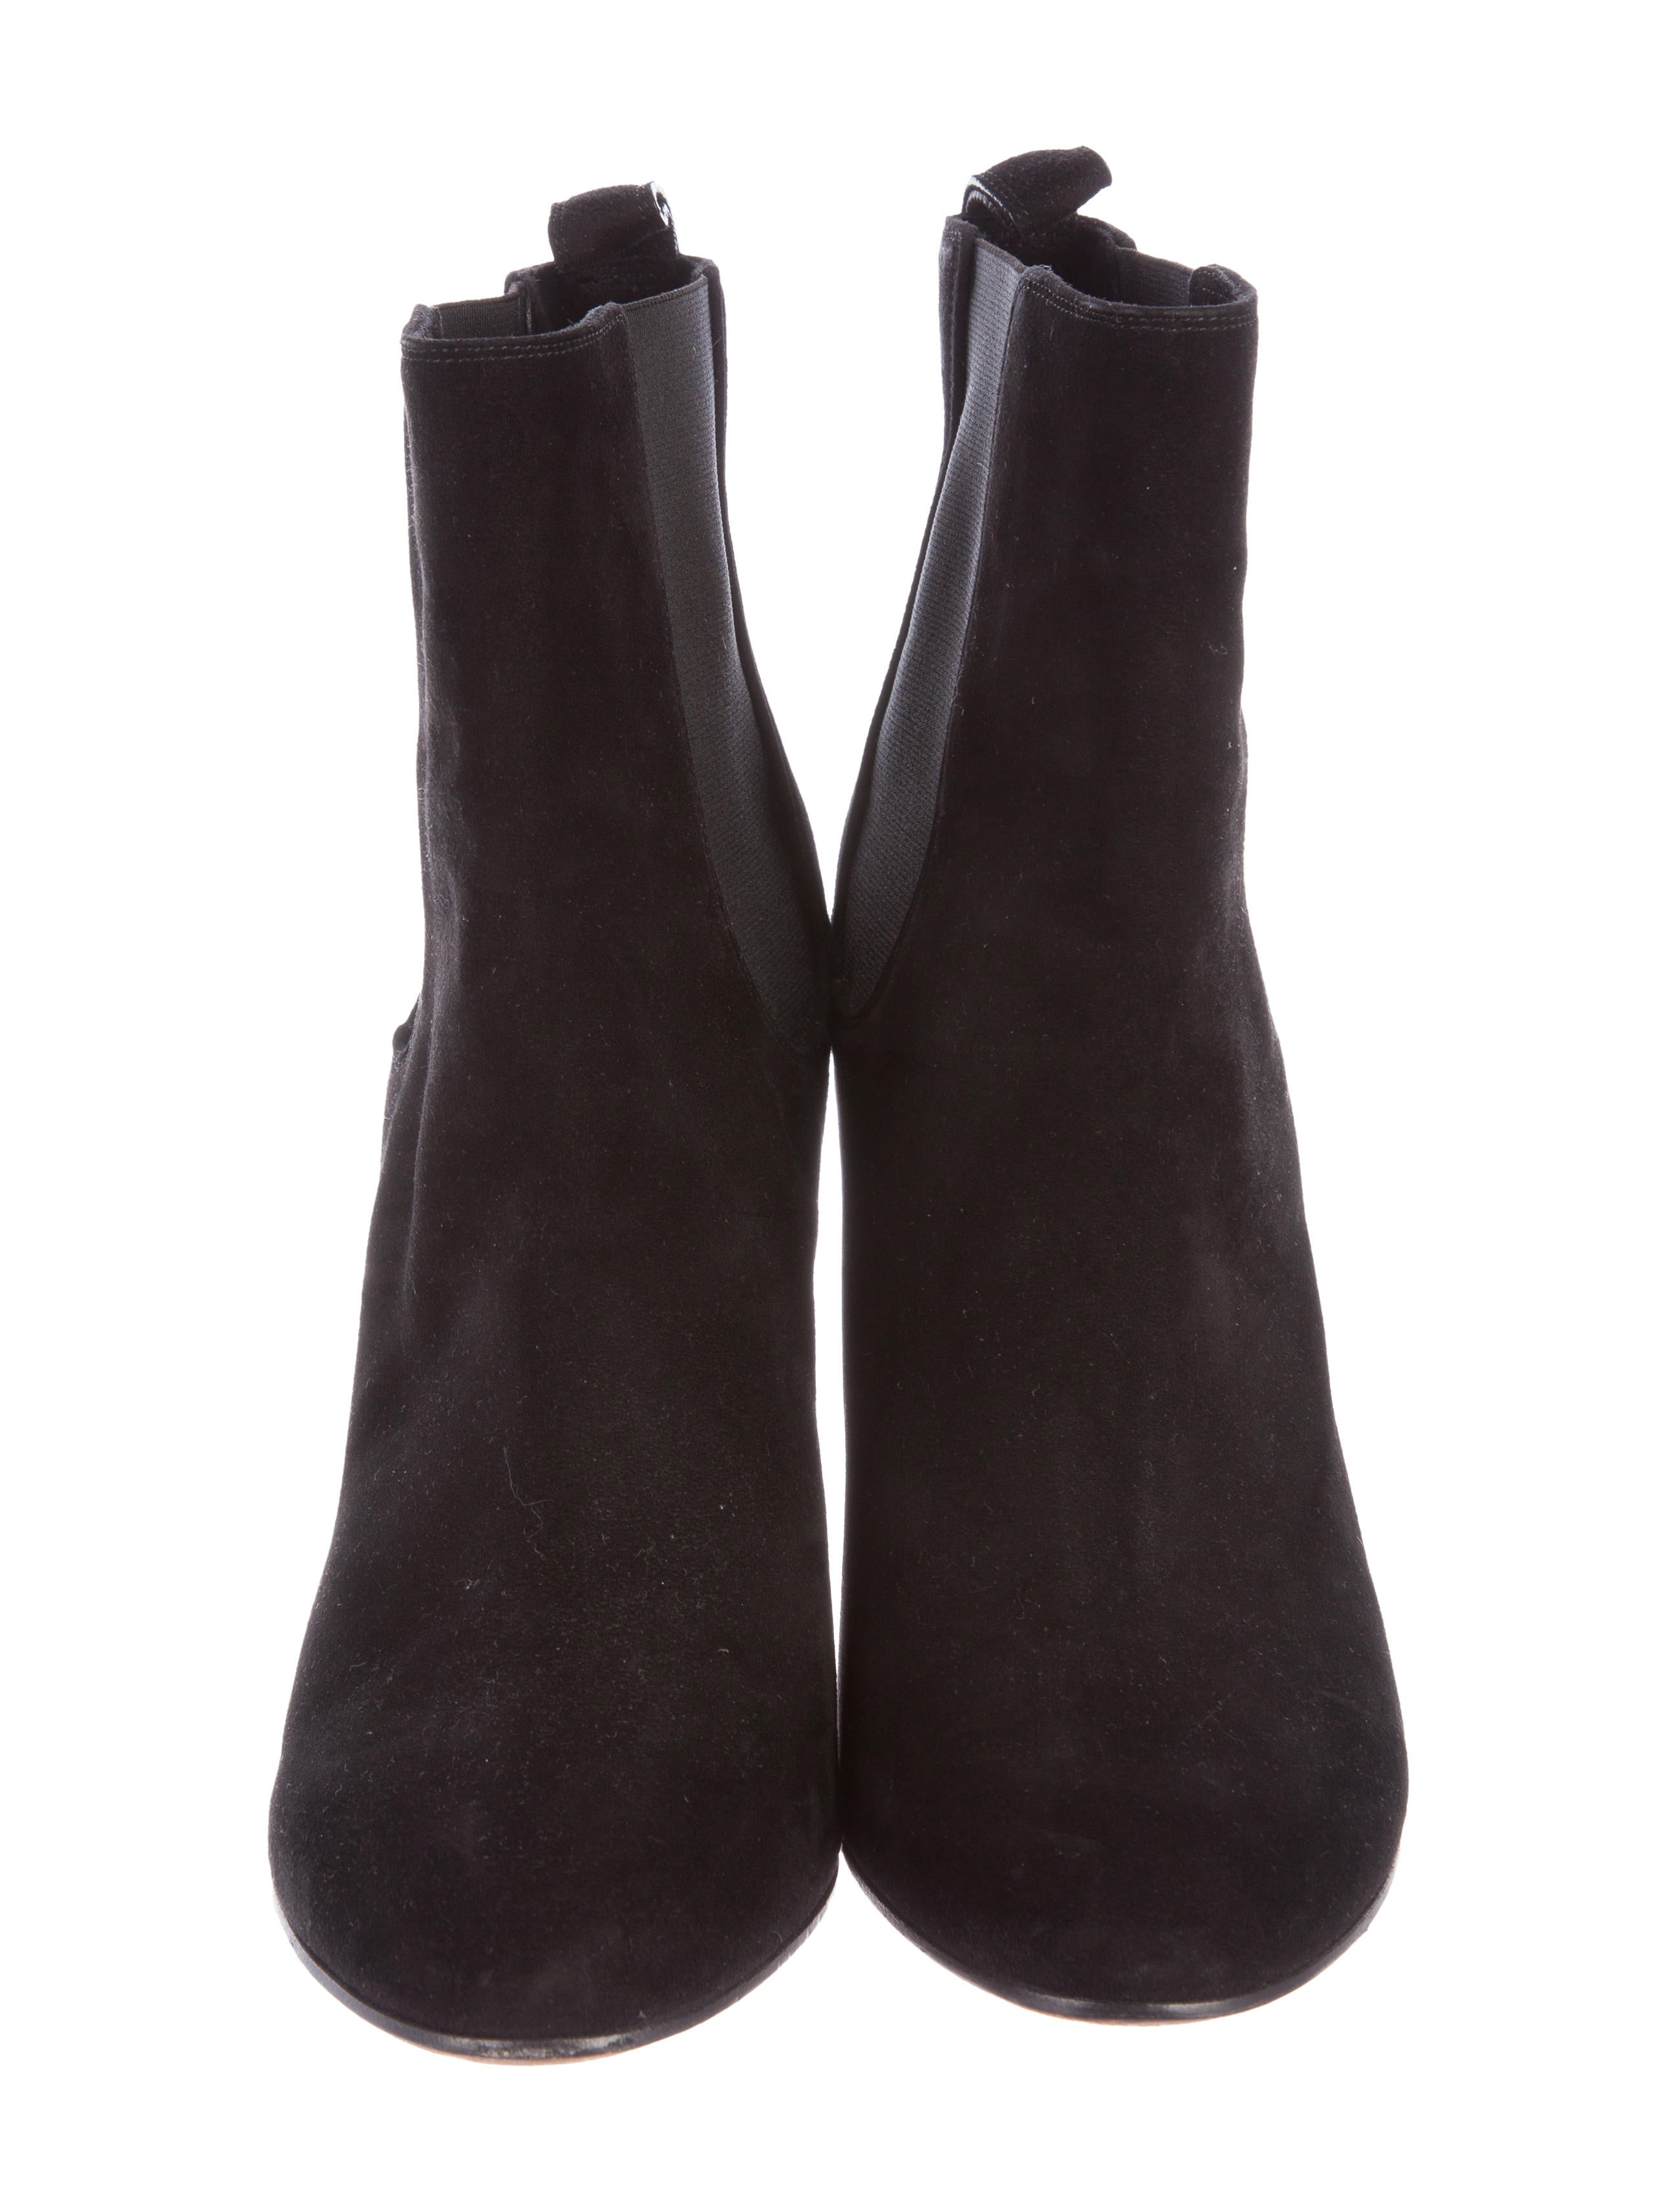 givenchy suede wedge ankle boots shoes giv41224 the